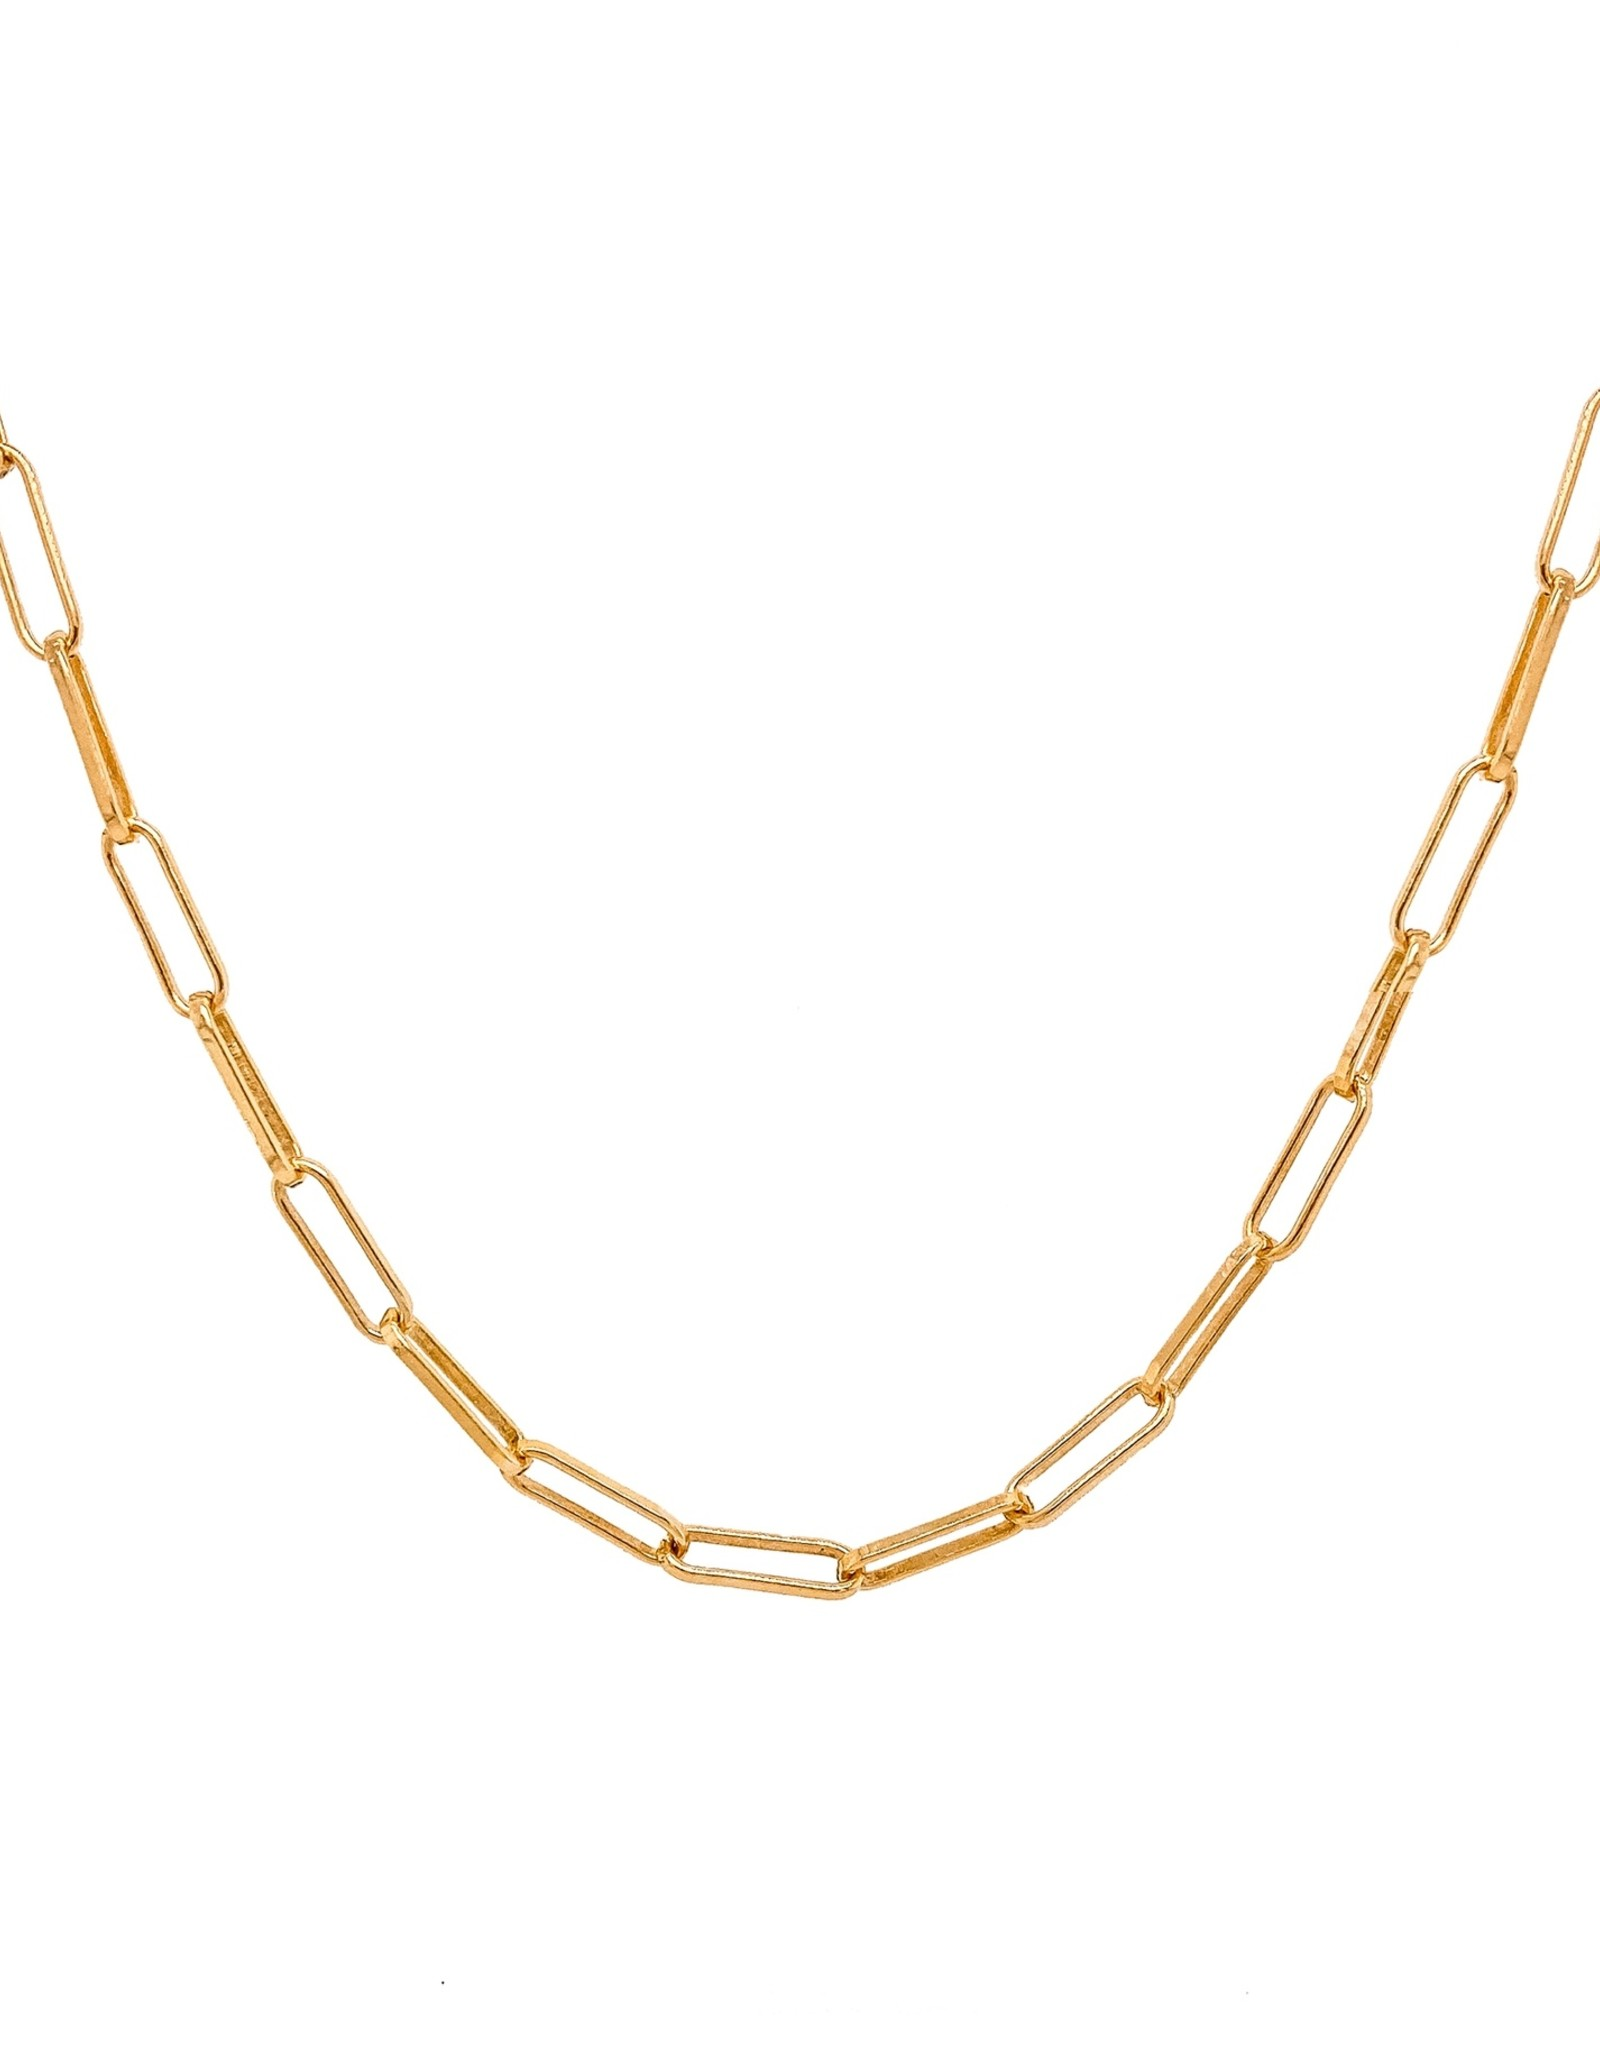 Mod + Jo Charlie Paperclip Chain Necklace